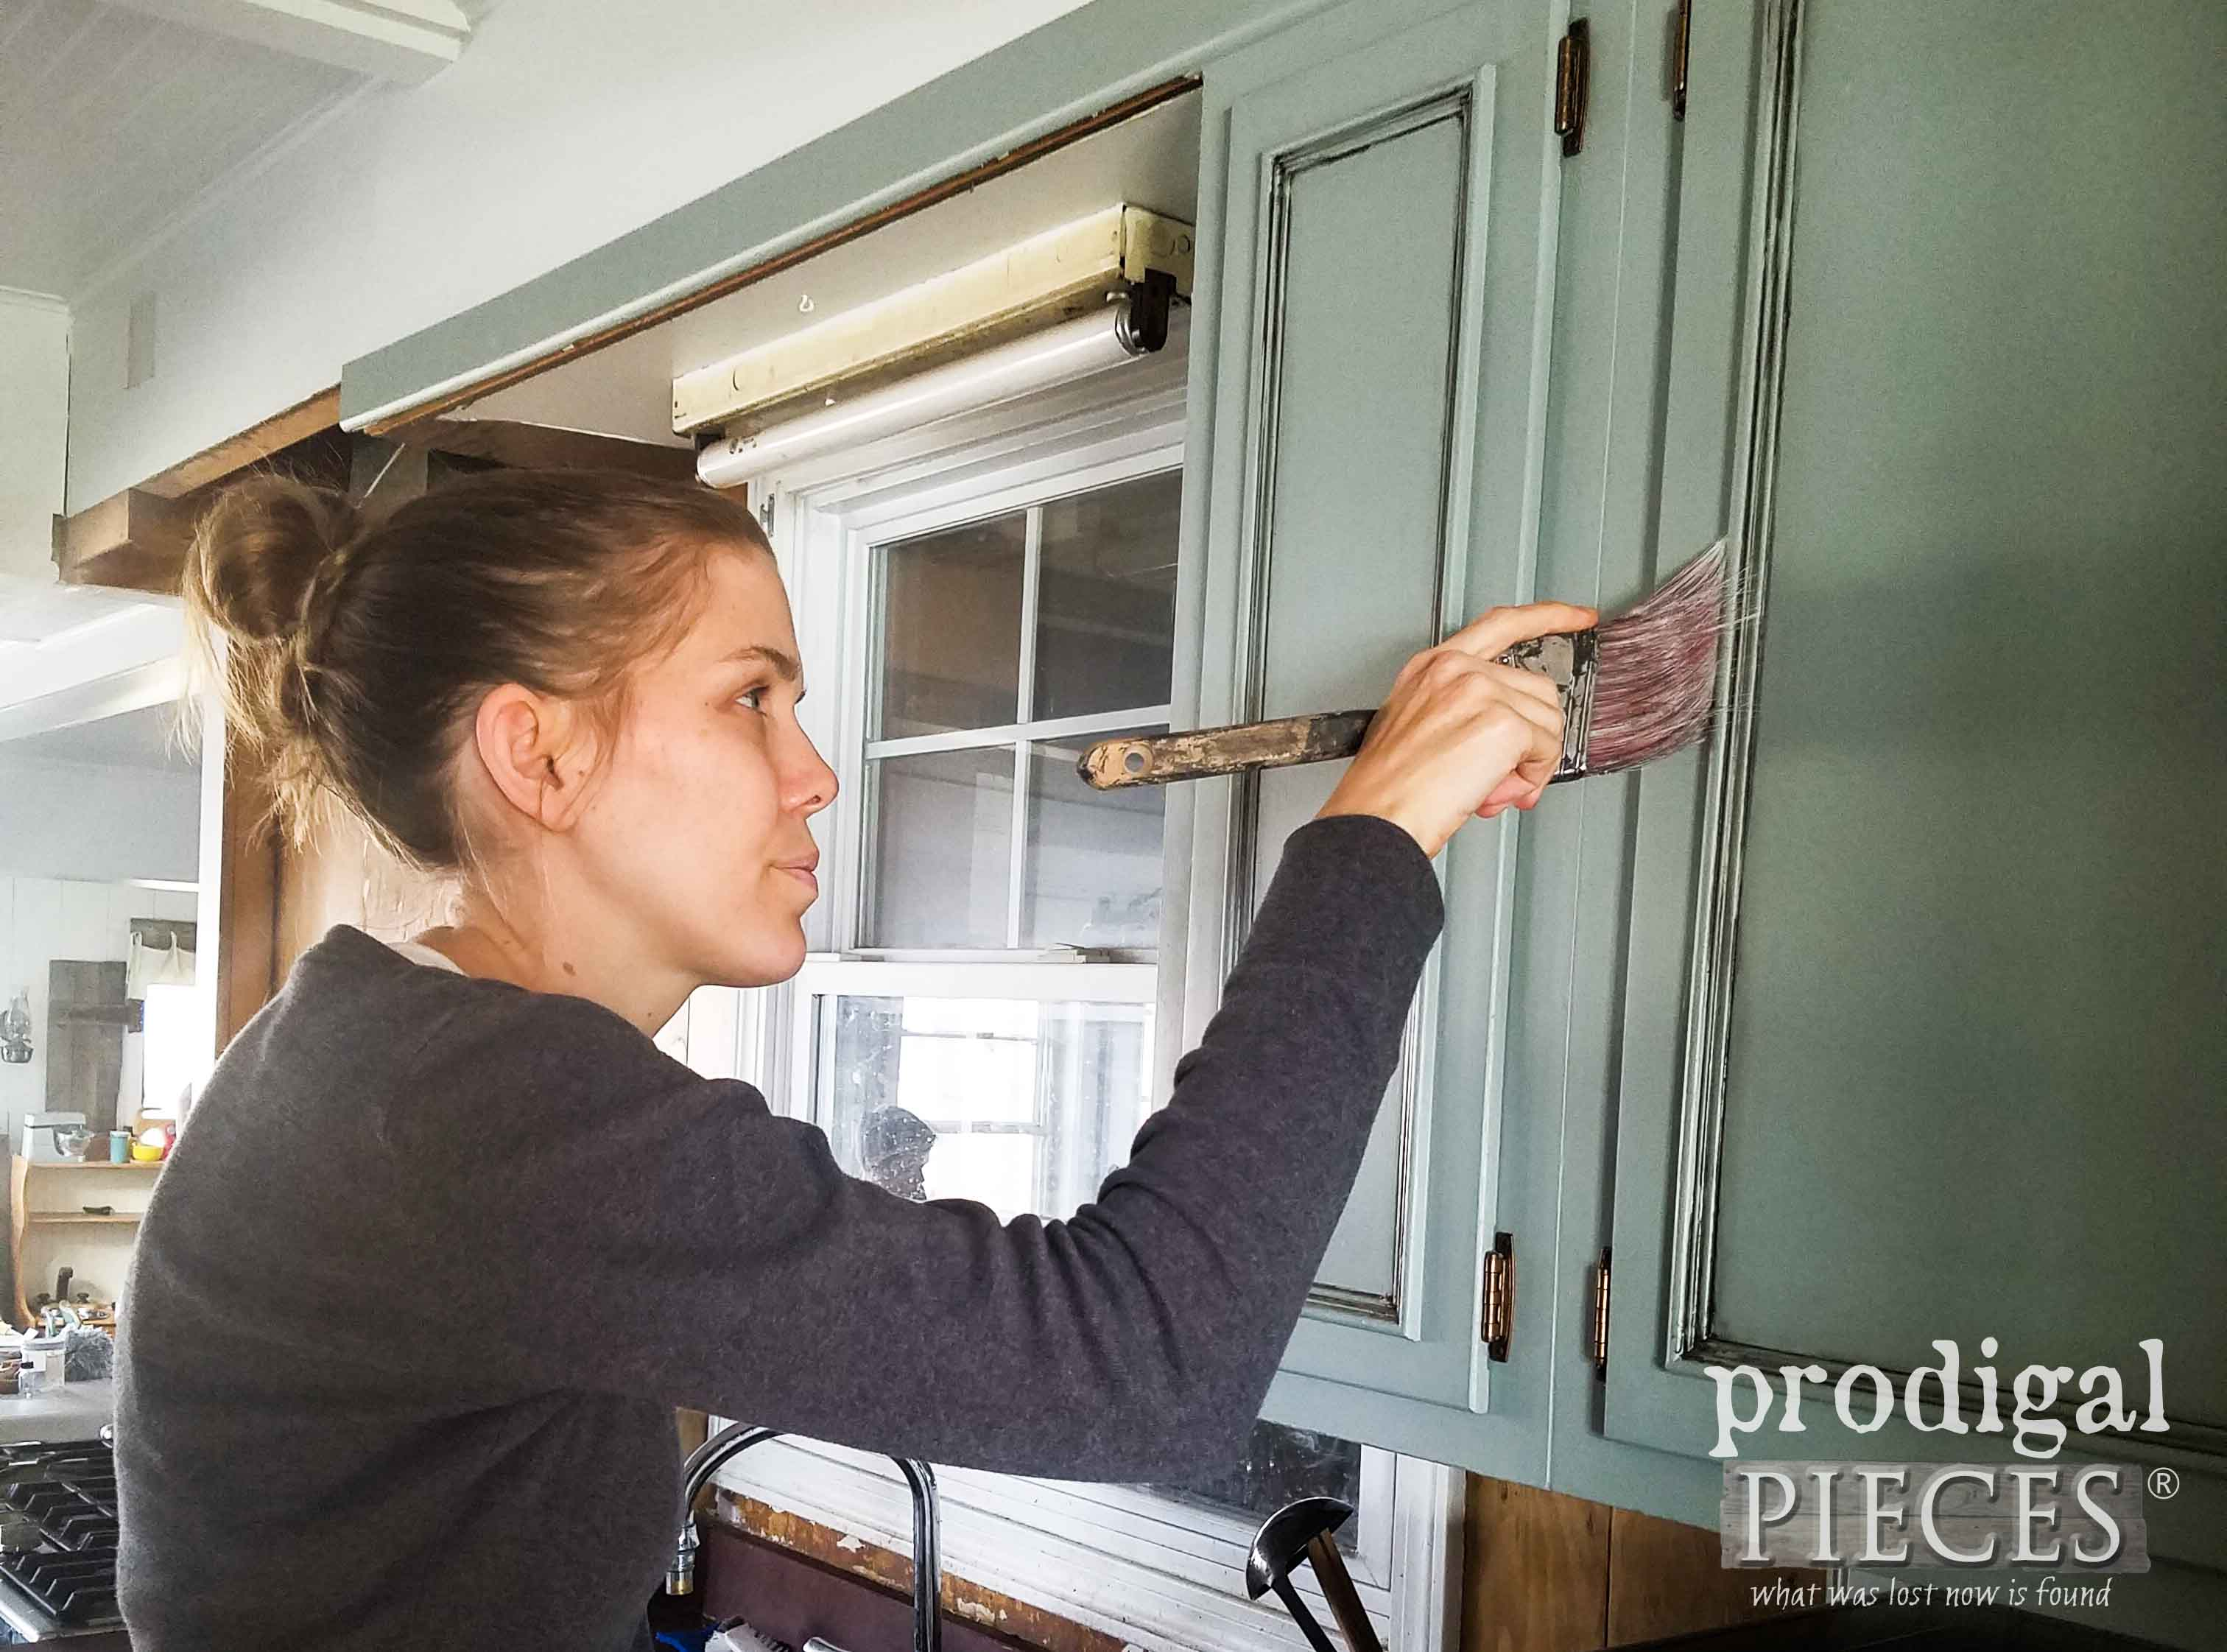 Painting Kitchen Cabinets | Prodigal Pieces | prodigalpieces.com